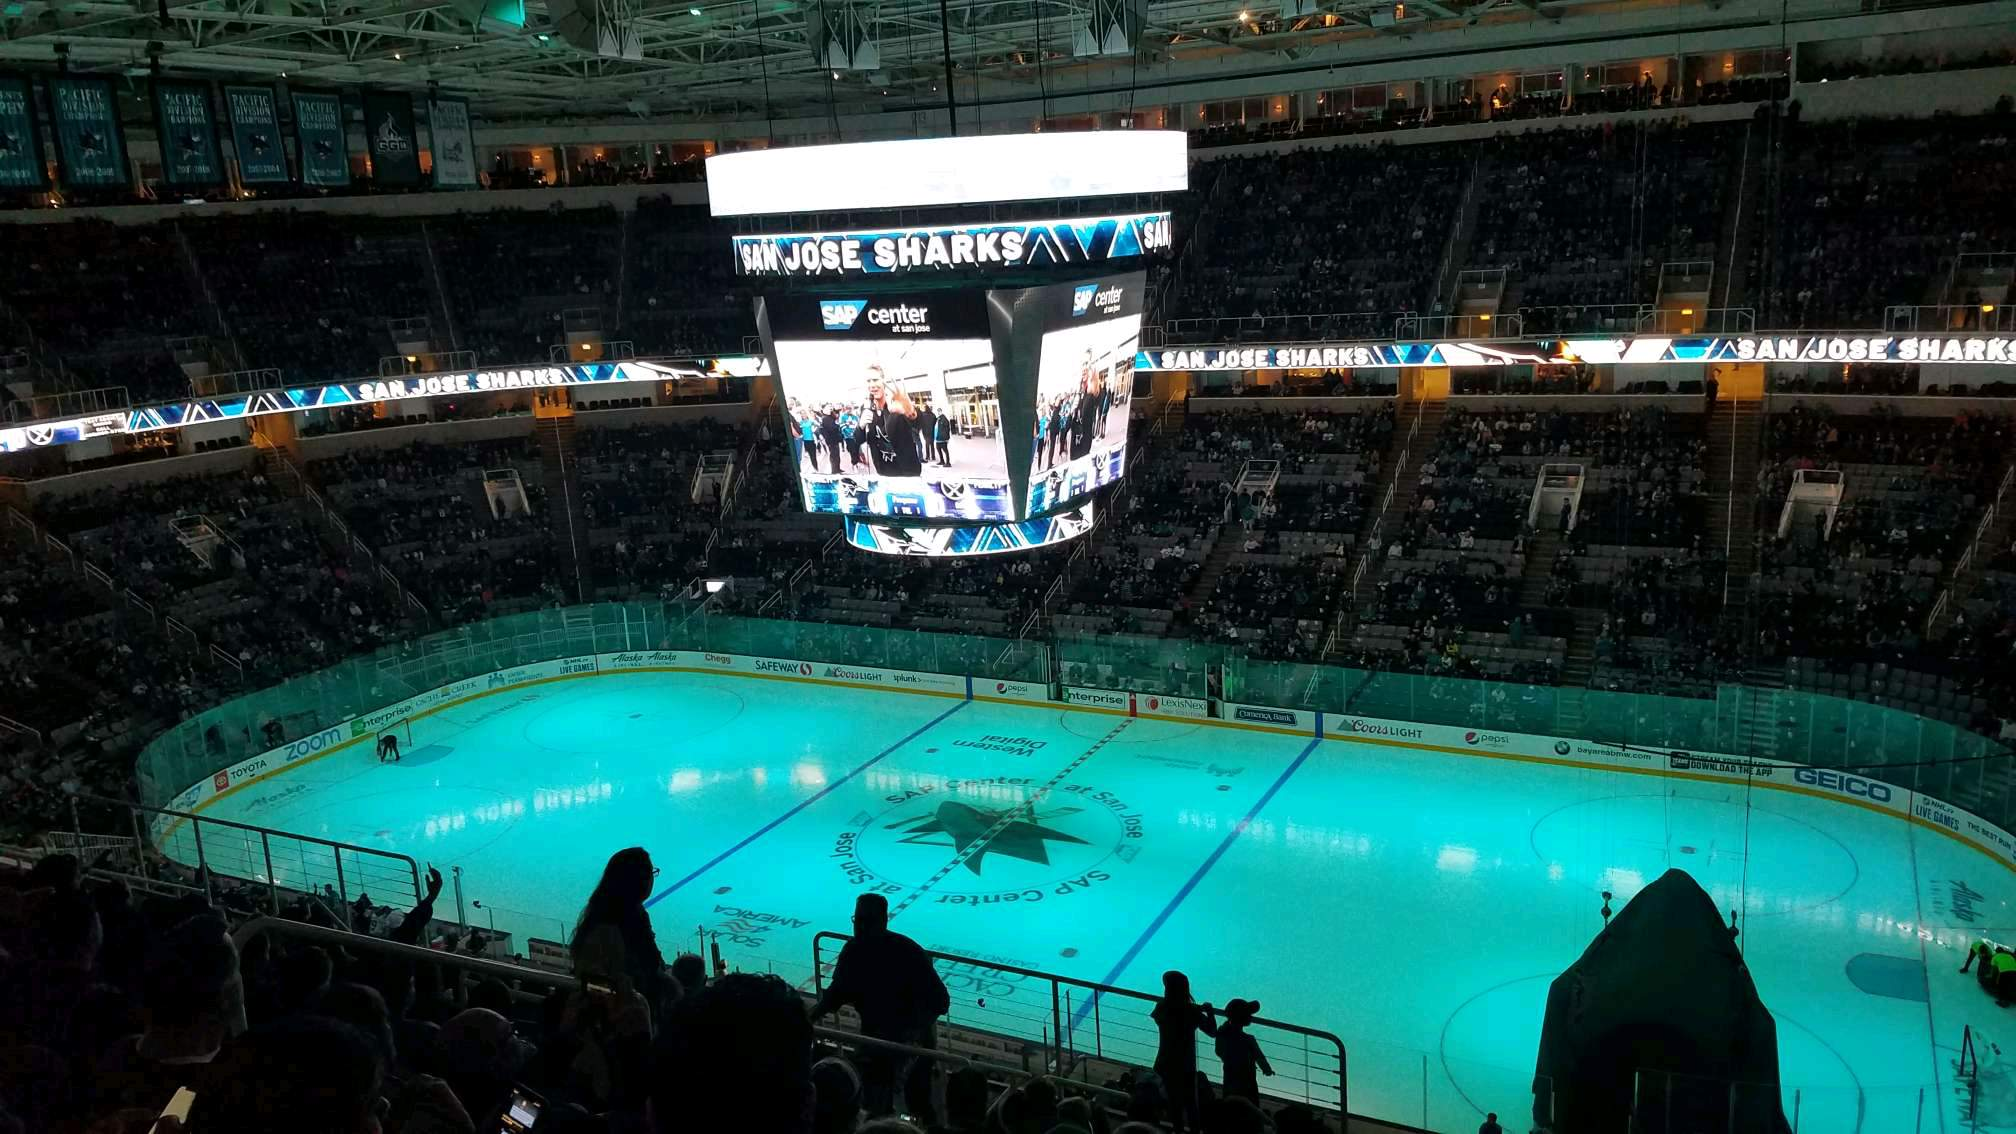 SAP Center Section 227 Row 13 Seat 17